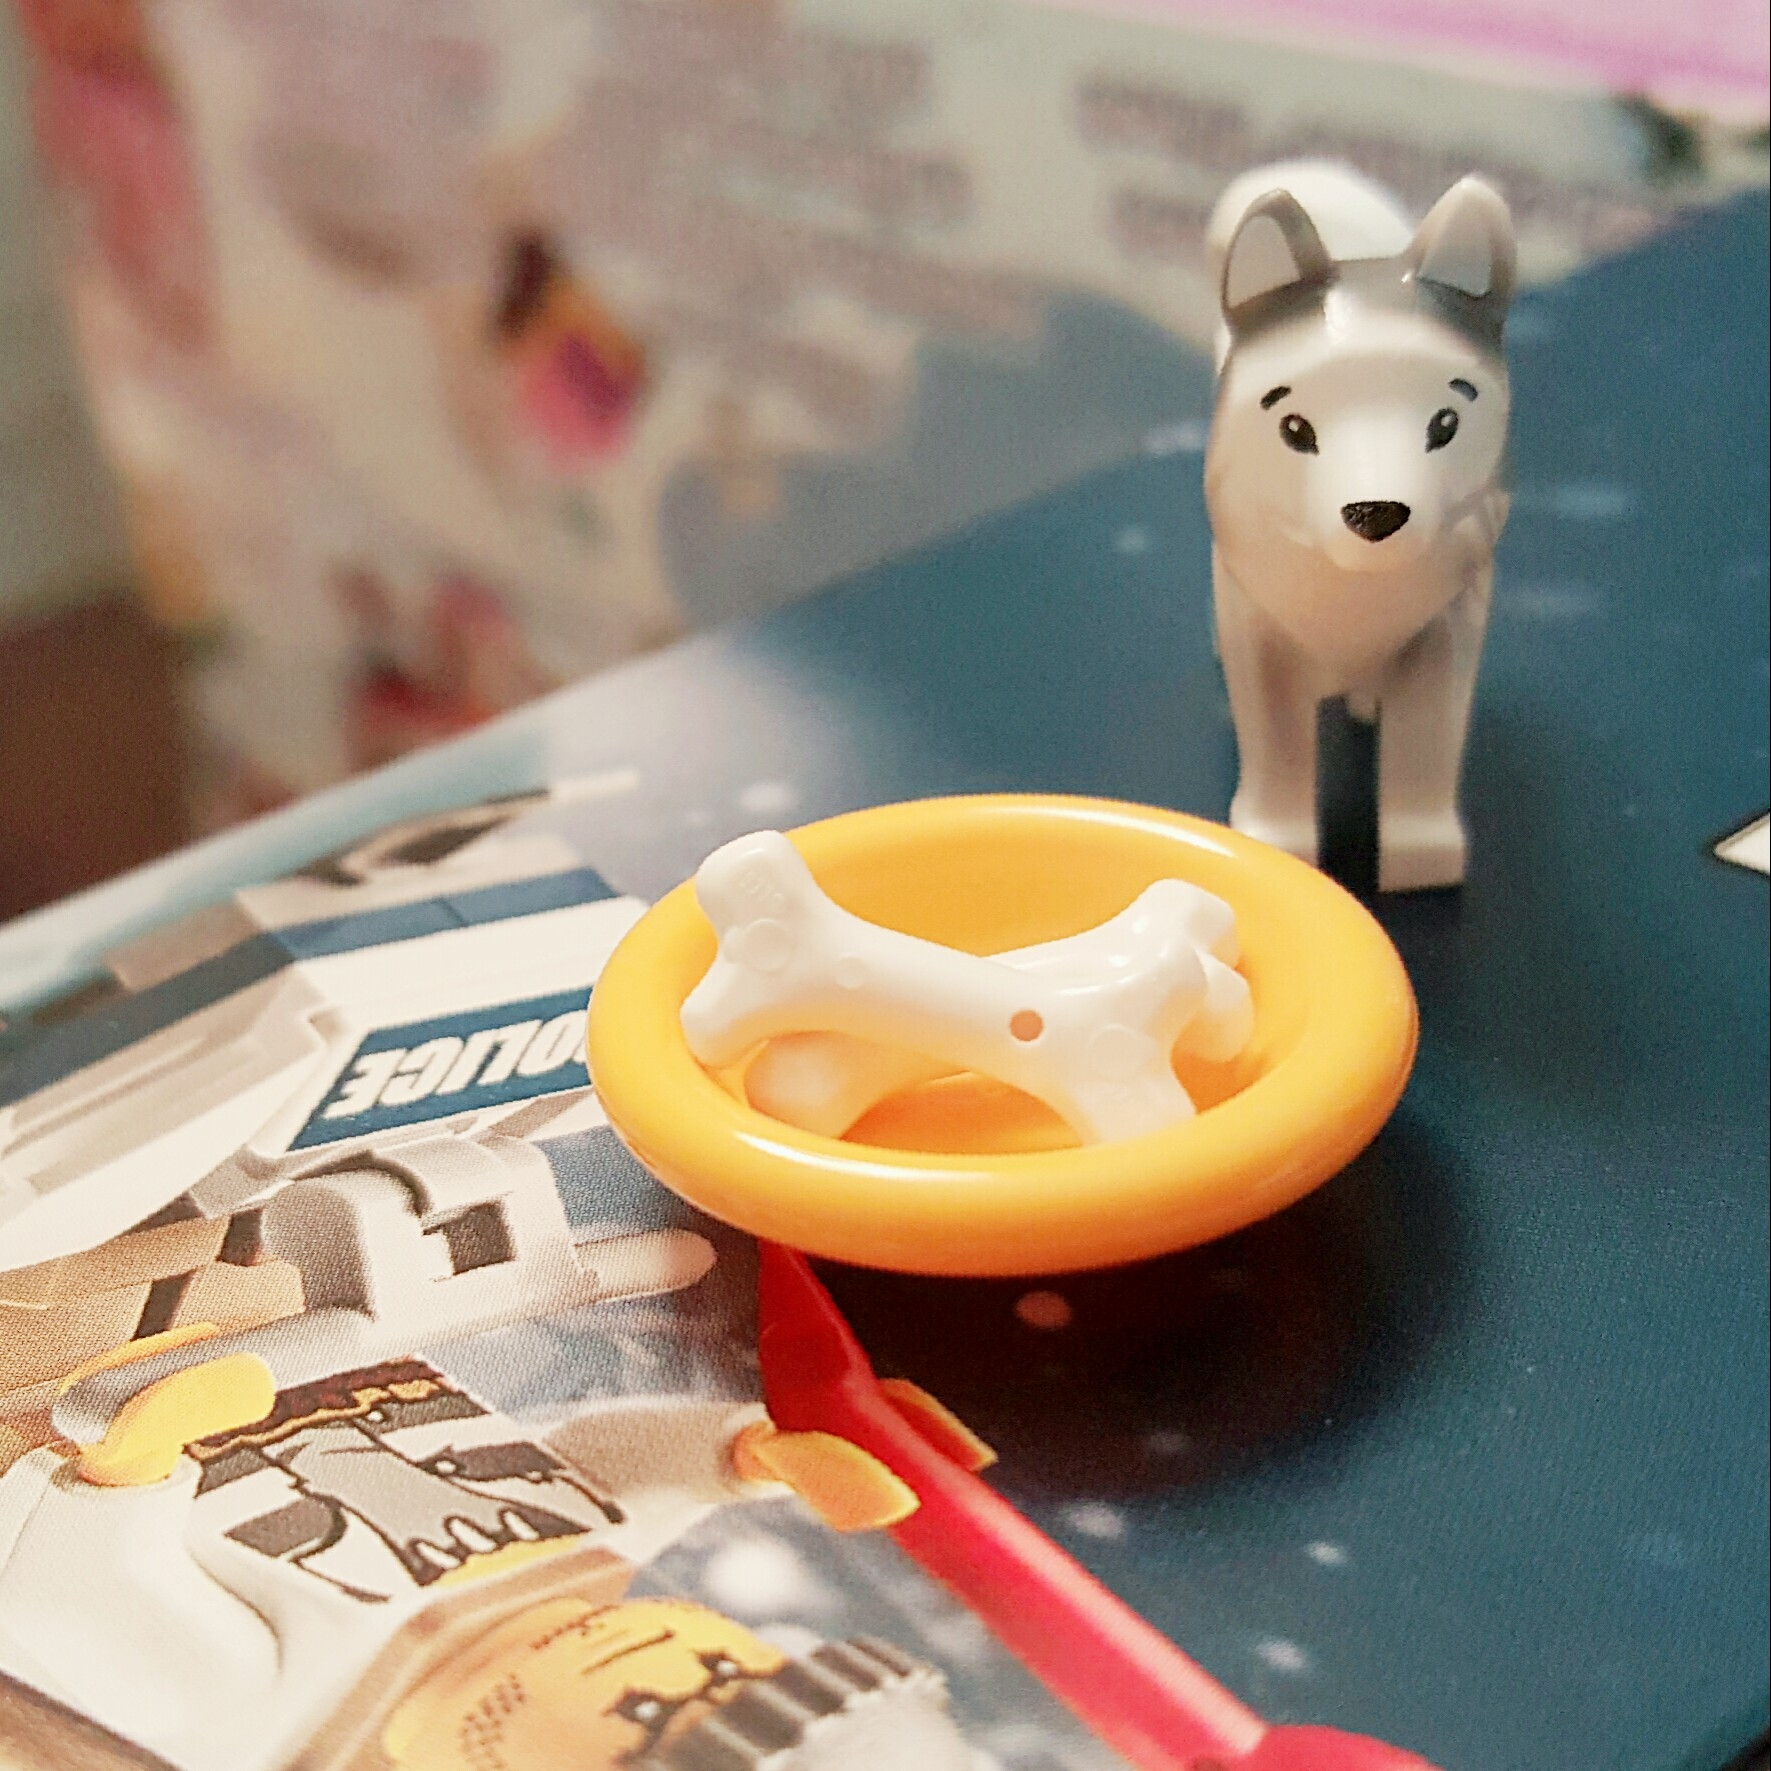 """""""Woof! Woof!"""" - Day 18 Husky with Bone and Bowl from LEGO City Advent Calendar"""